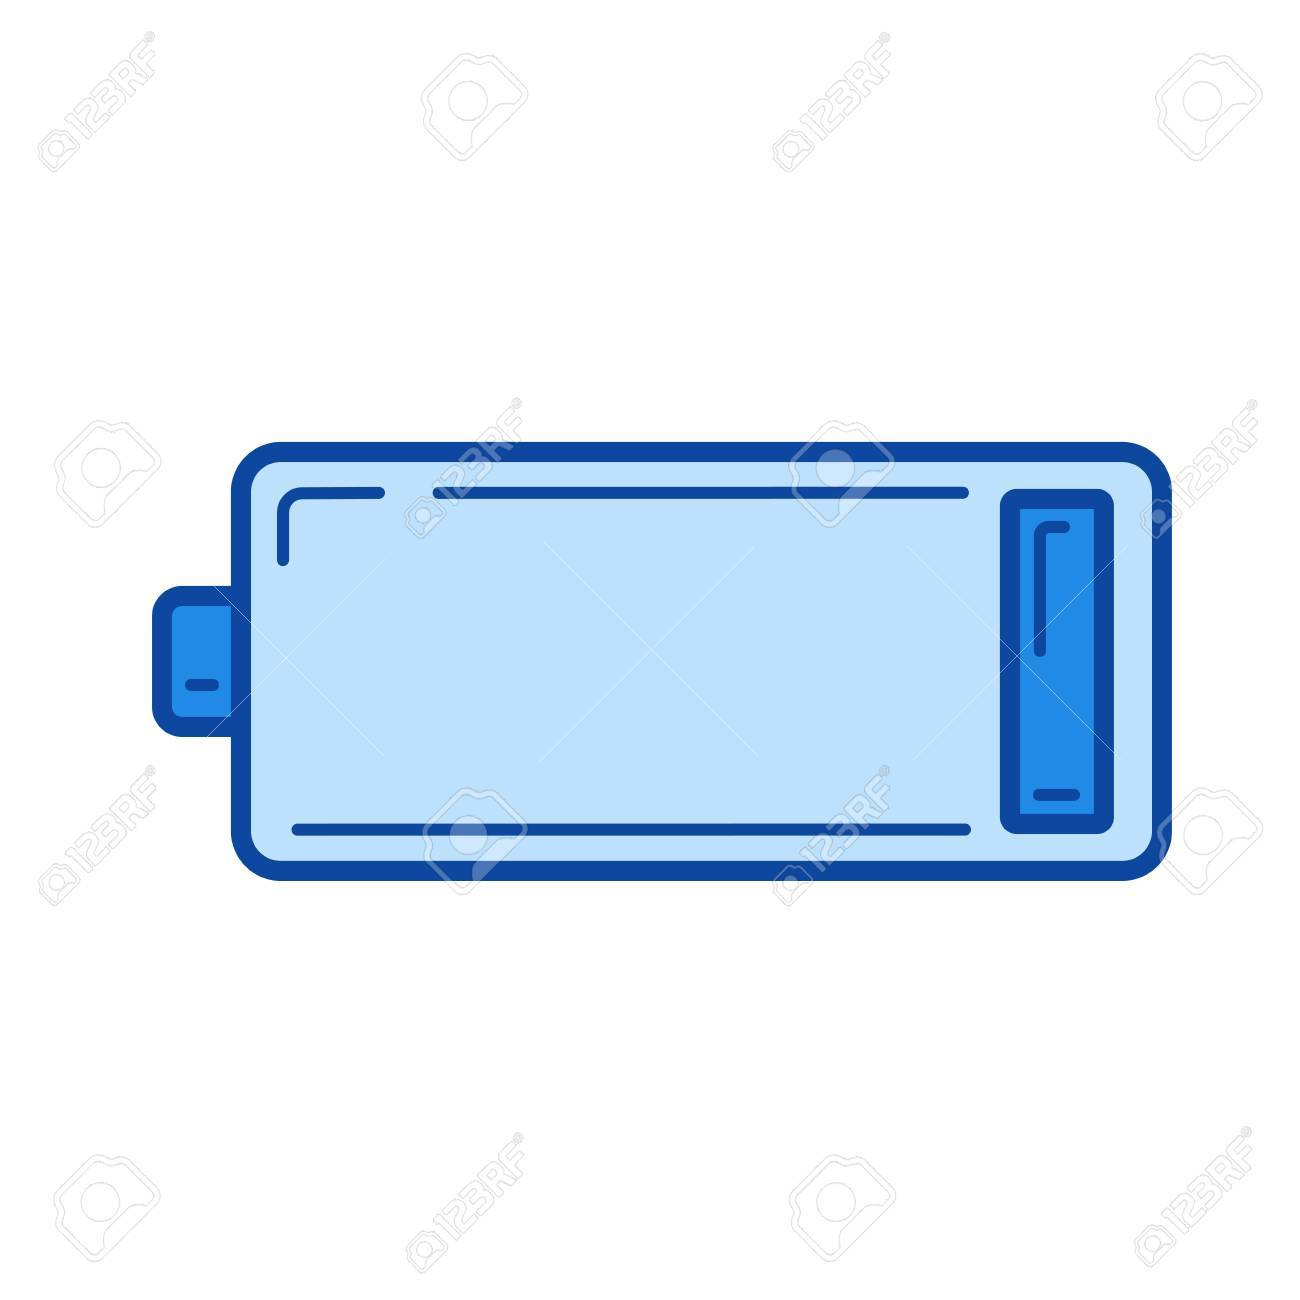 low battery vector line icon isolated on white background low royalty free cliparts vectors and stock illustration image 84943975 low battery vector line icon isolated on white background low